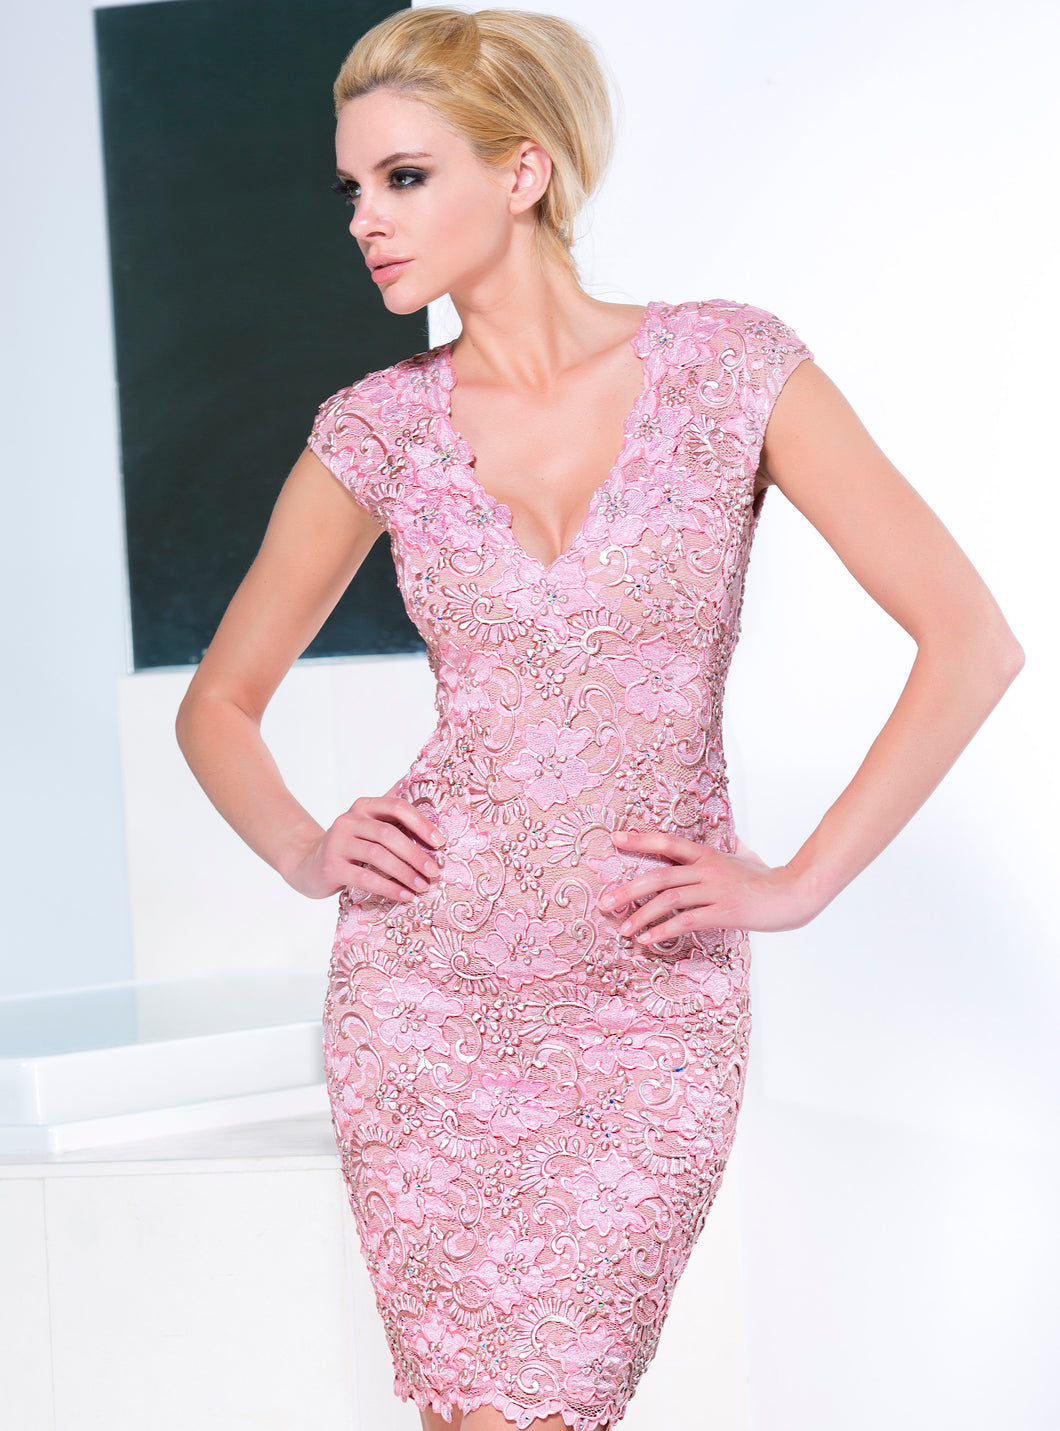 Jaz Rose Mix Short Cocktail Dress - BACCIO Couture